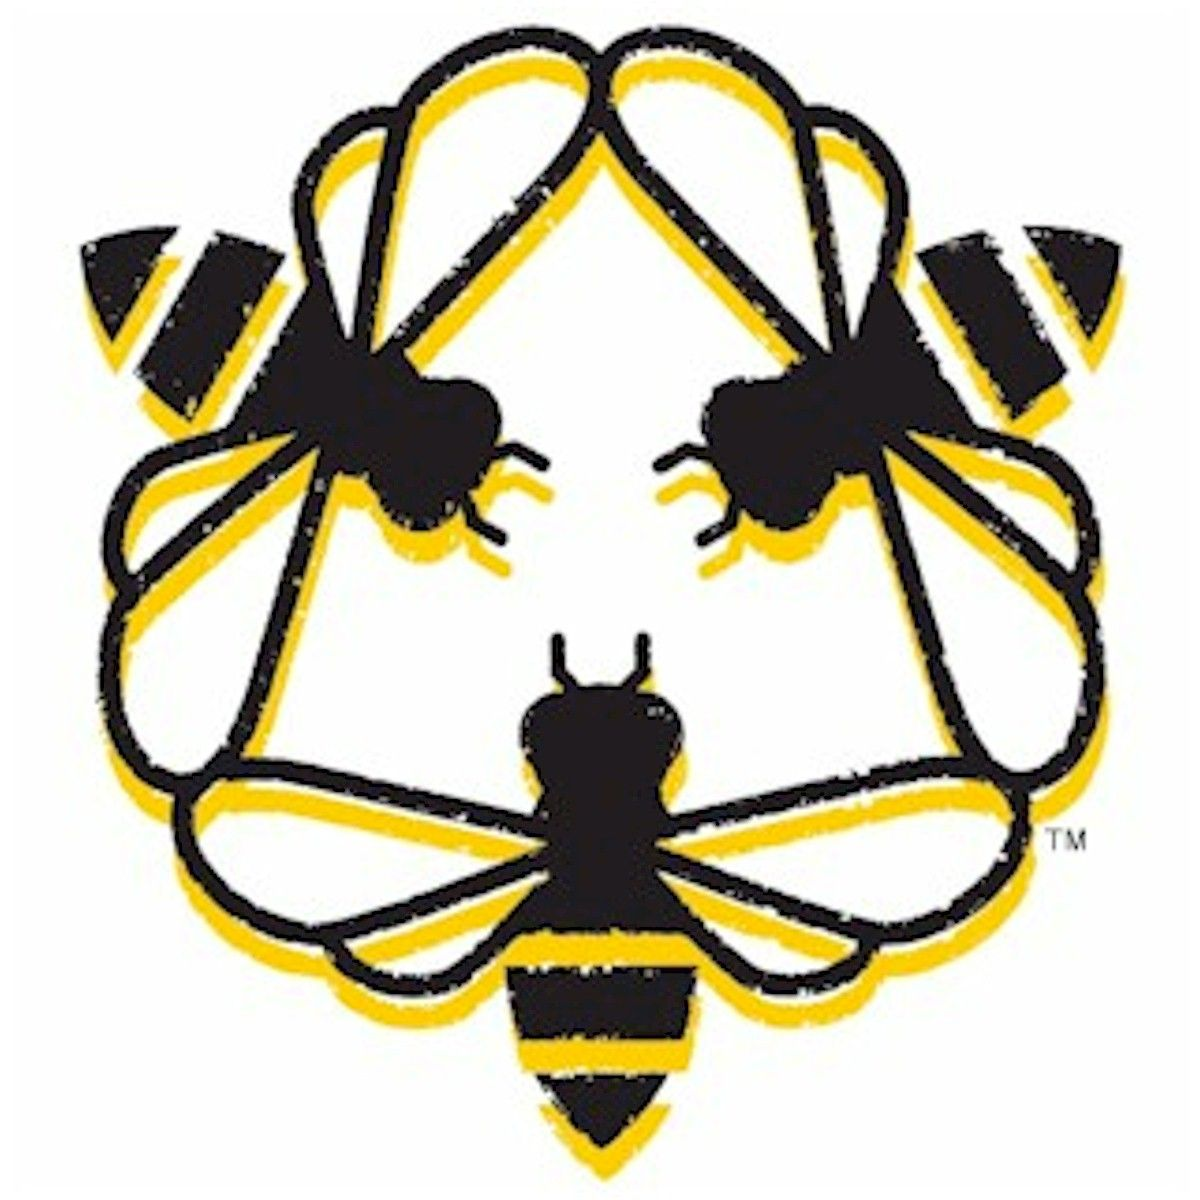 3 bees.